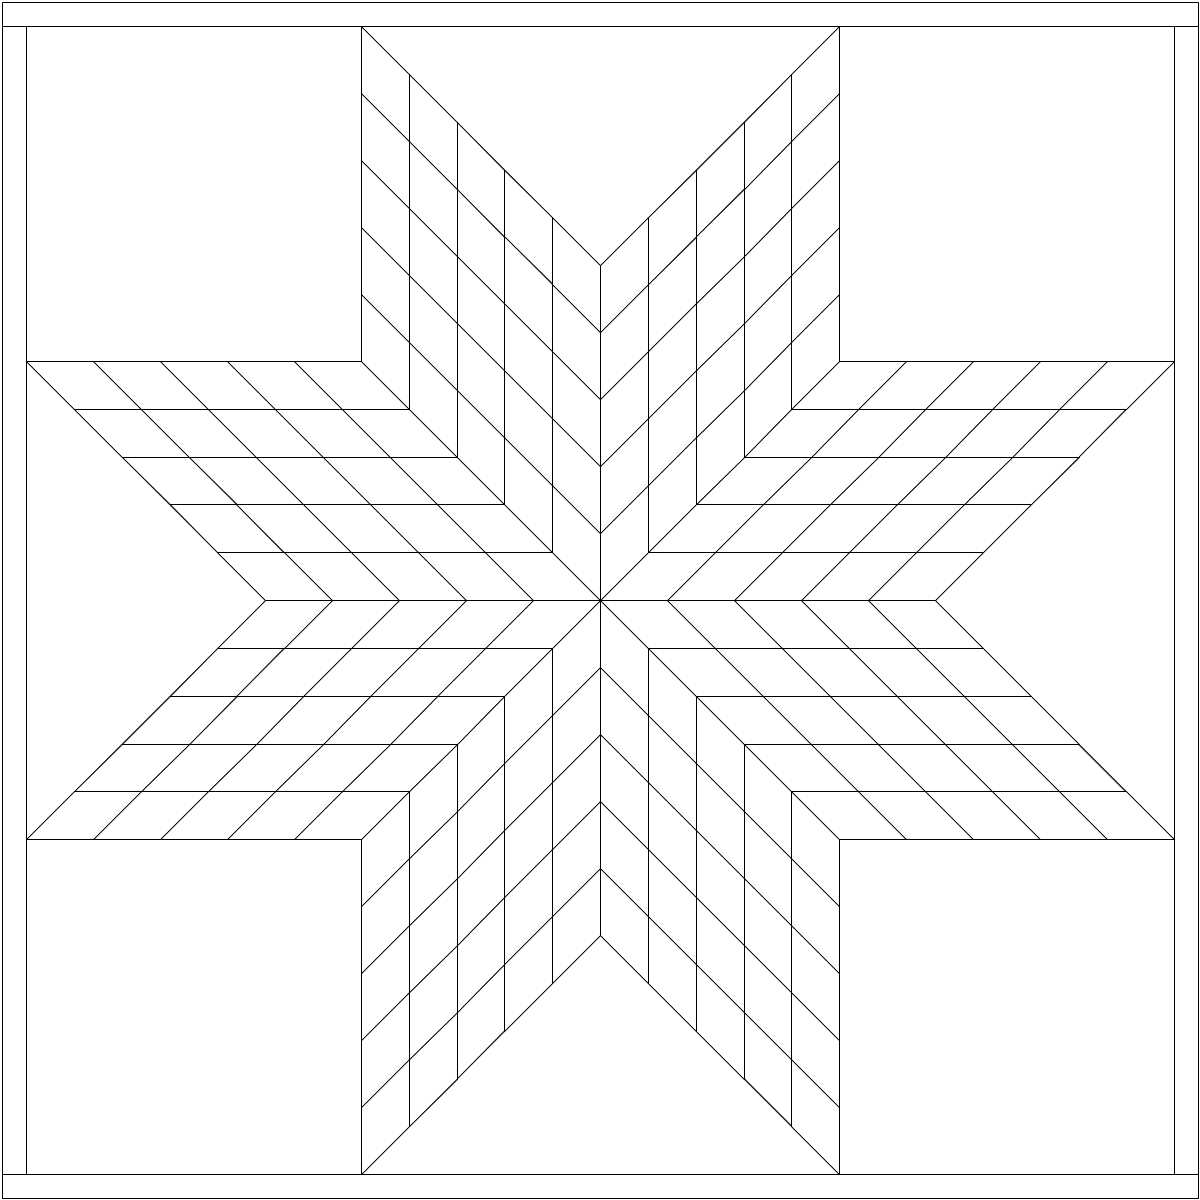 Looking for Lone Star pattern to color in